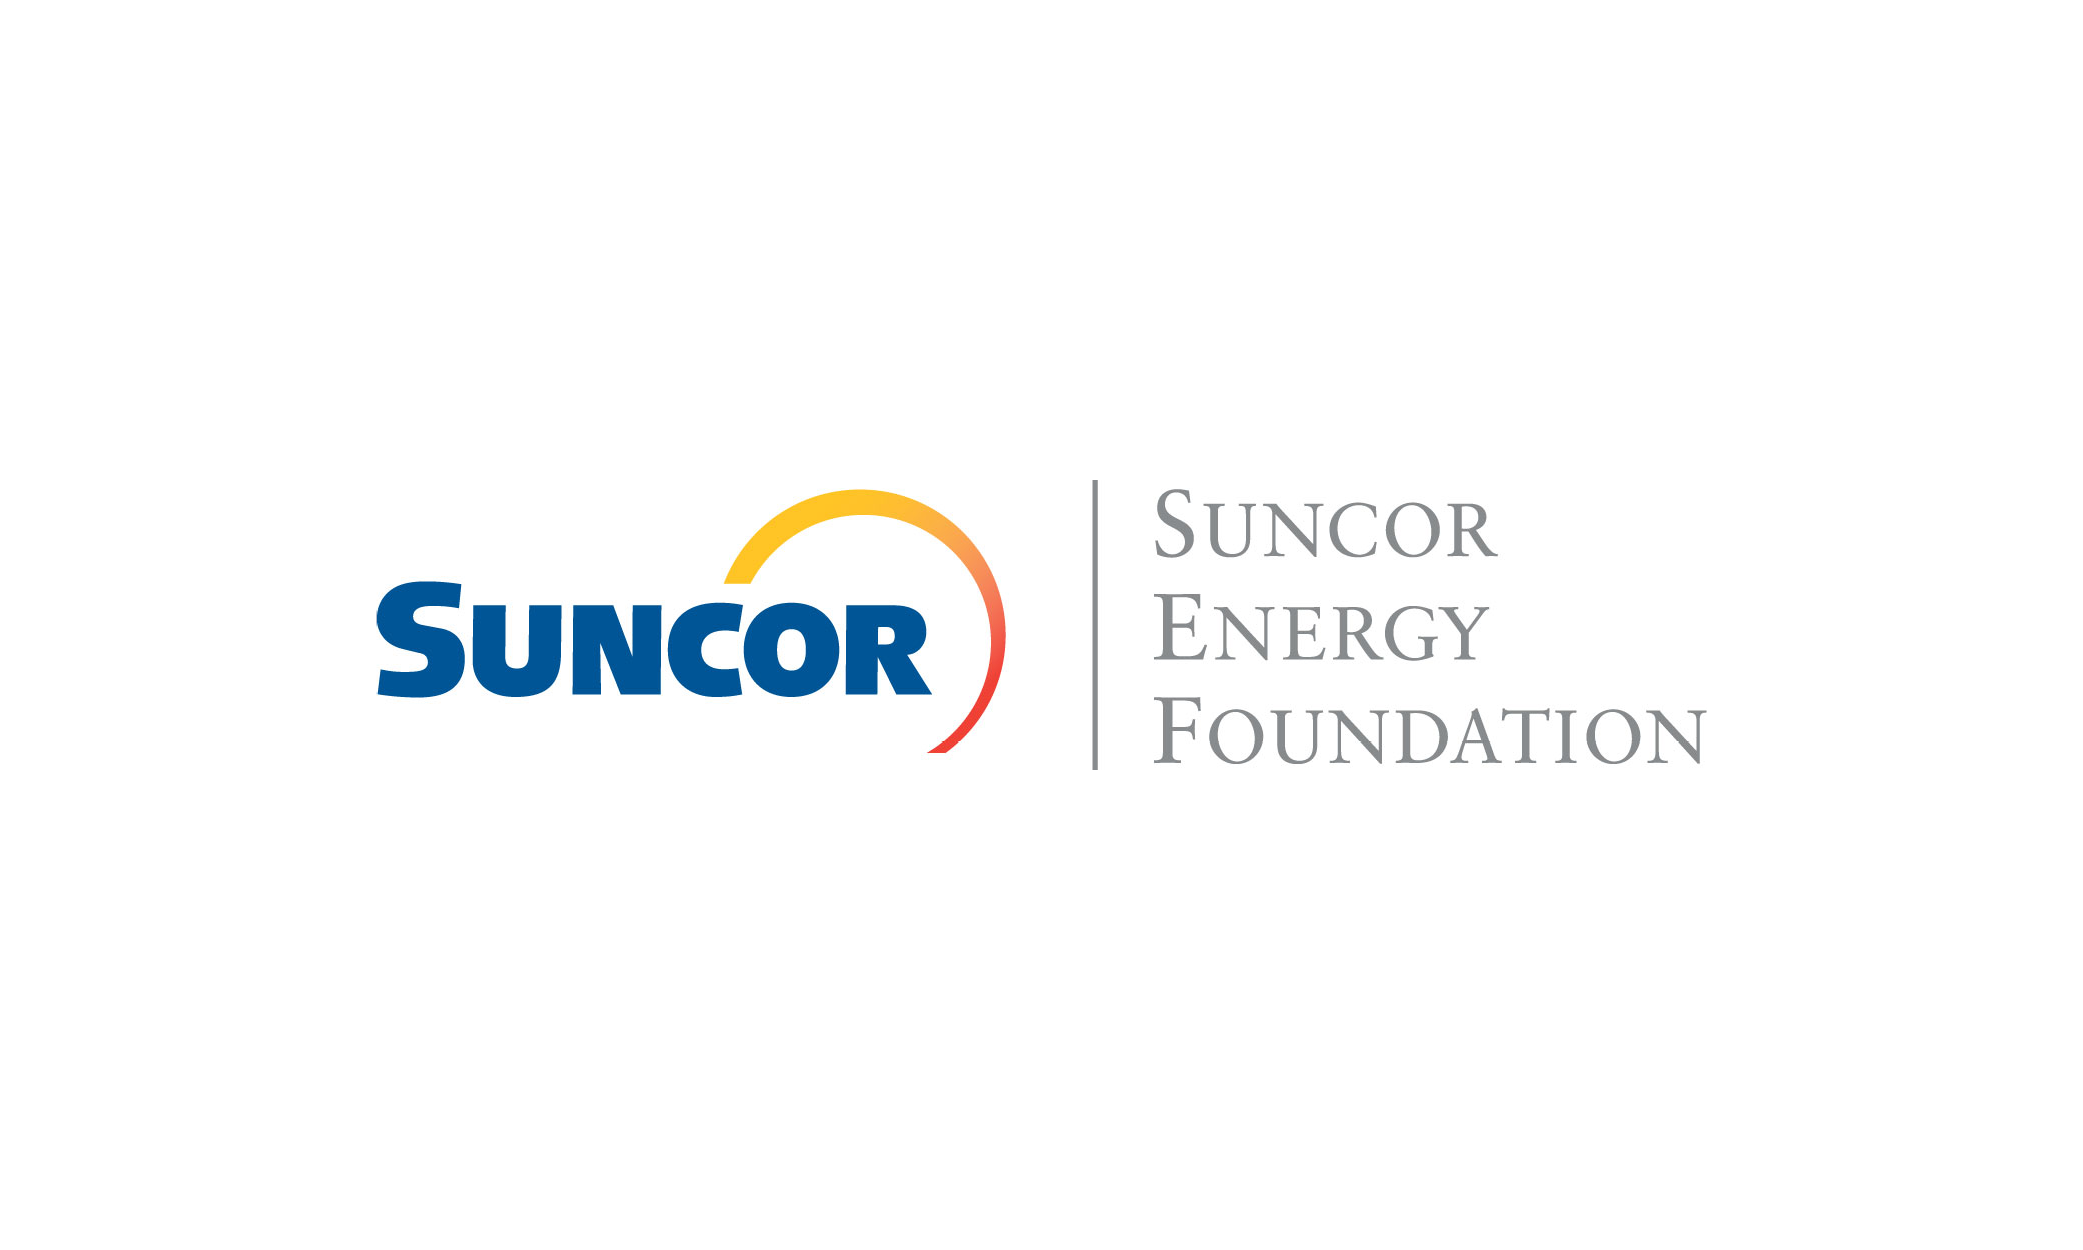 Suncor EF White bkgd.png